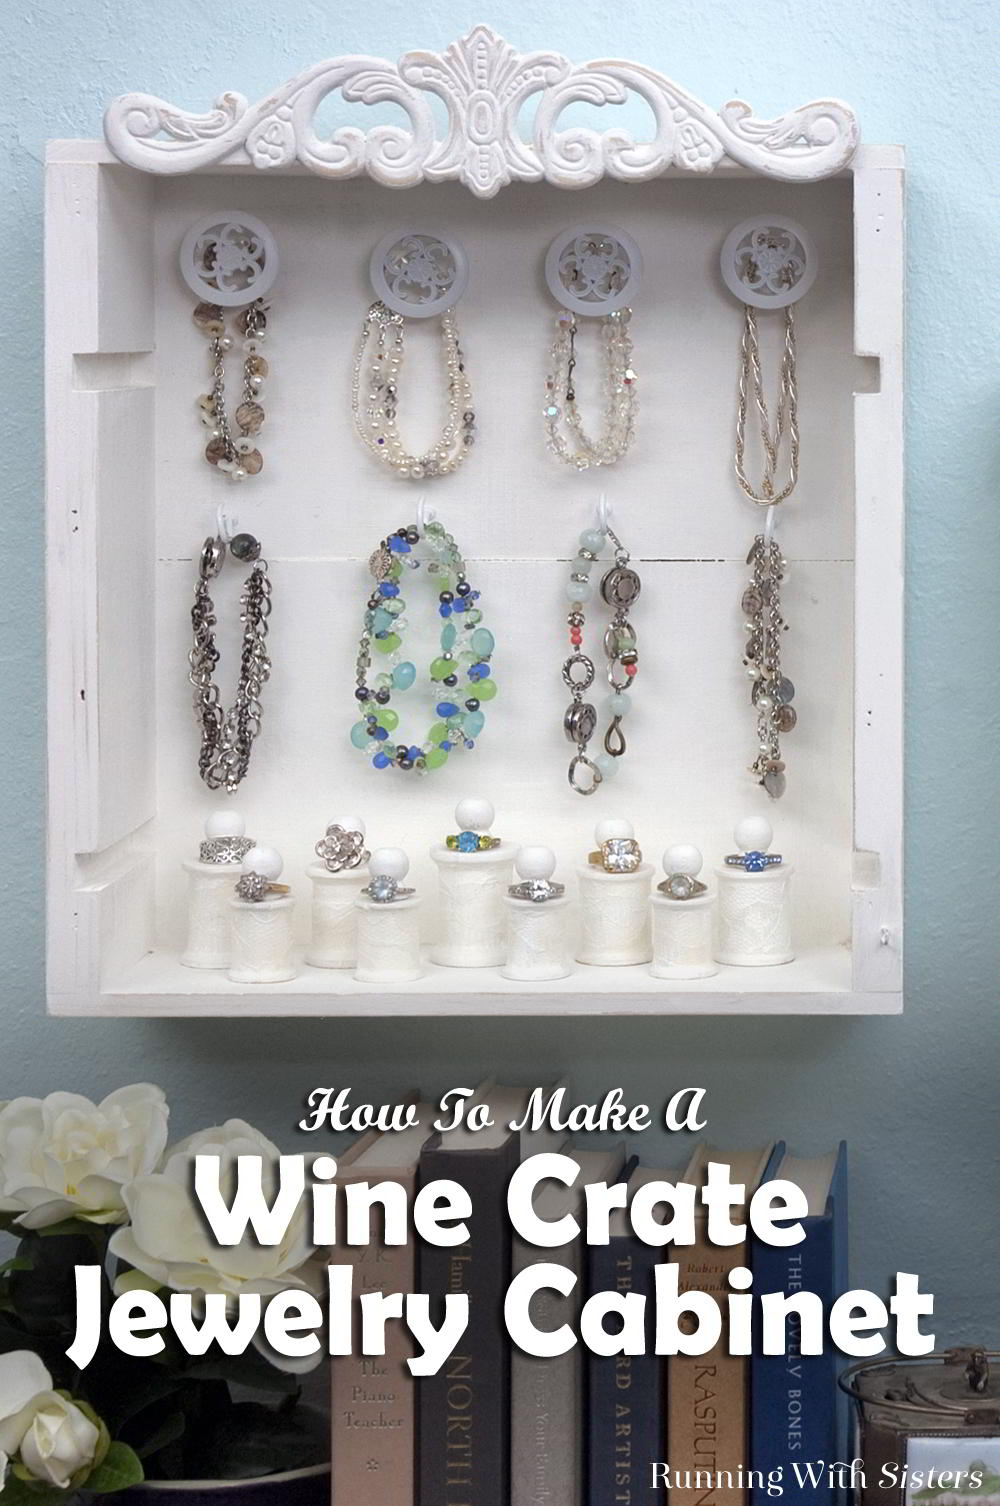 Make a wine crate jewelry cabinet with wine crates, wooden spools, and cabinet knobs. You can get wine crates from wine shops and they're usually free!